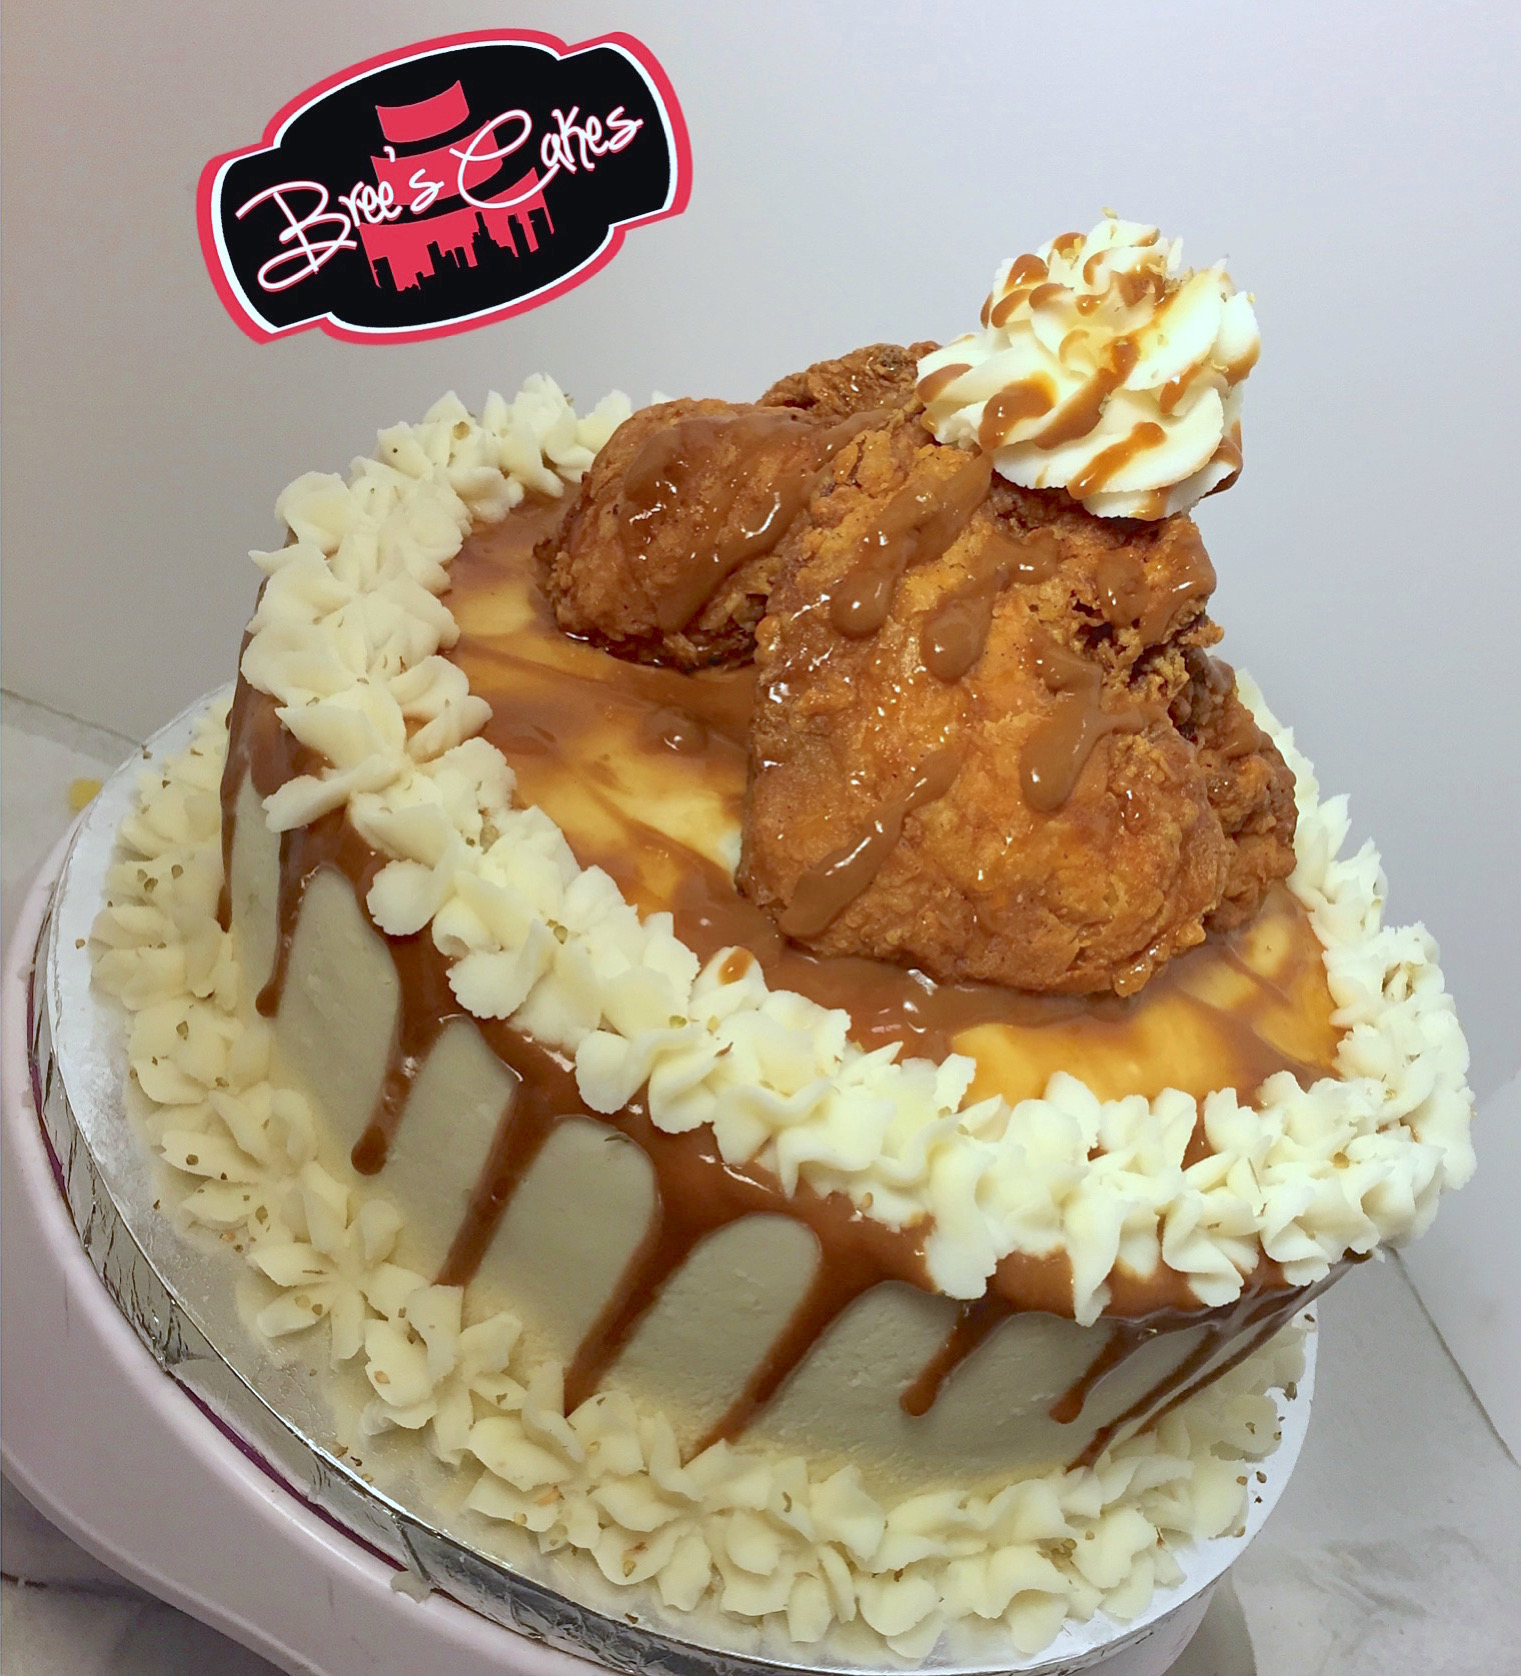 Peachy This Fried Chicken Mashed Potato Cake Is A Dinner Dream Come True Personalised Birthday Cards Paralily Jamesorg